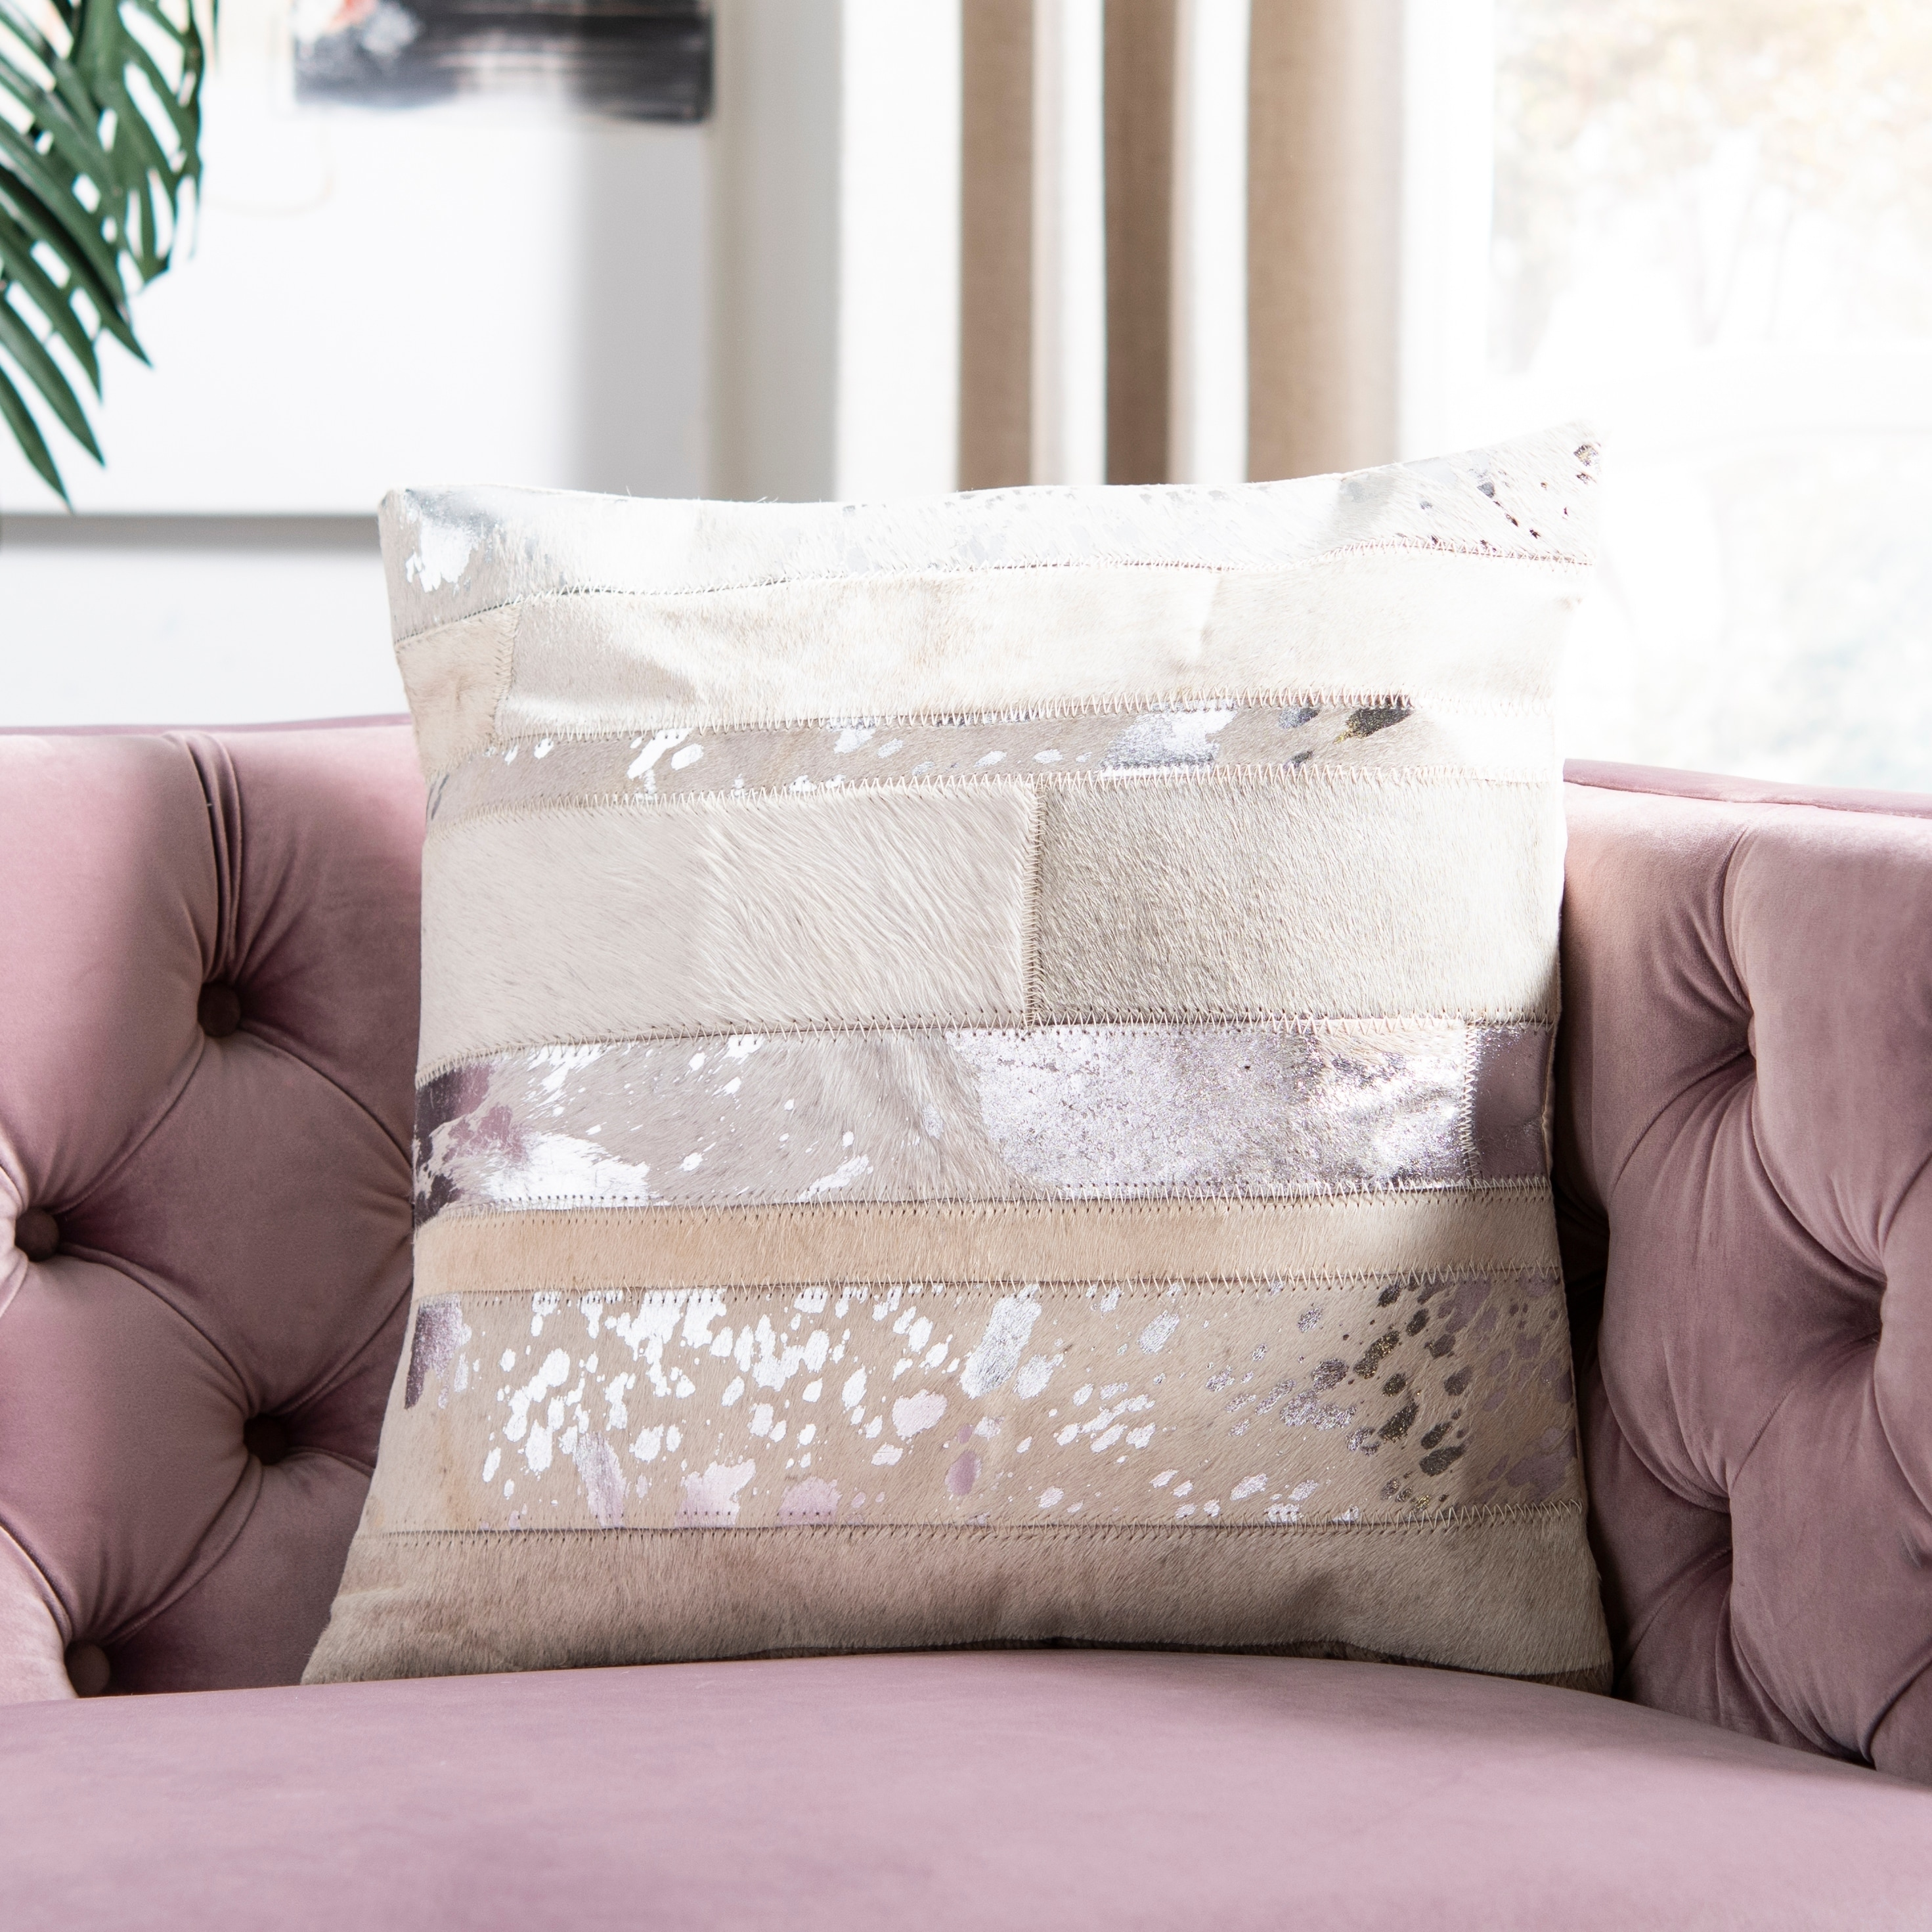 Safavieh Peyton Silver 18 Inch Square Decorative Throw Pillows Set Of 2 On Sale Overstock 9532894